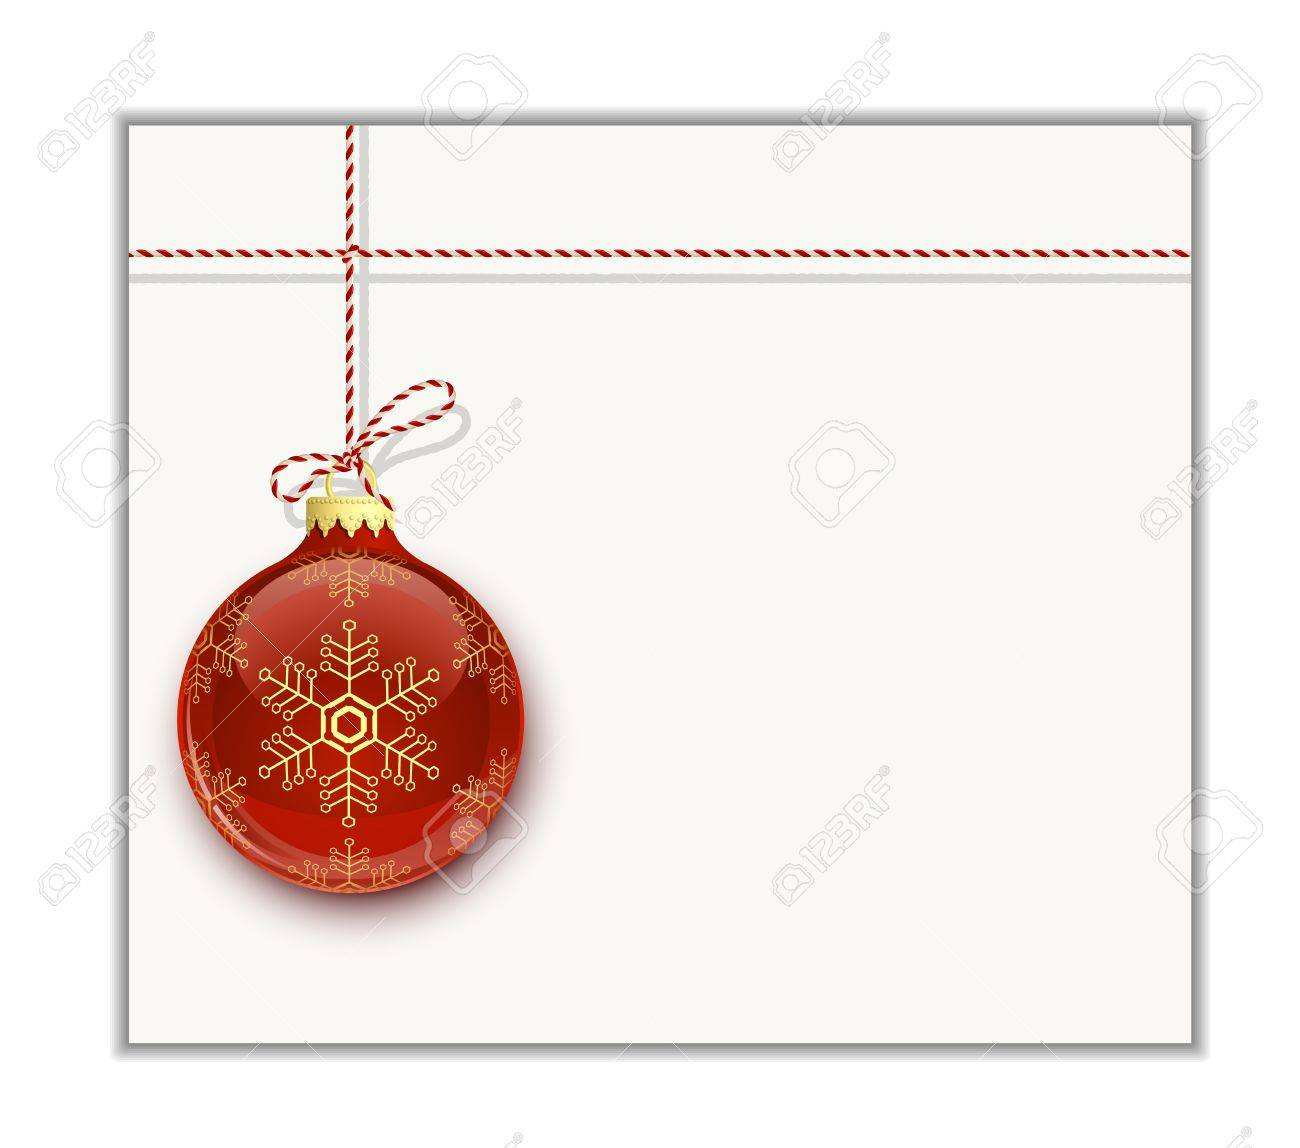 43 Customize Our Free Christmas Bauble Template For Christmas Card in Word by Christmas Bauble Template For Christmas Card